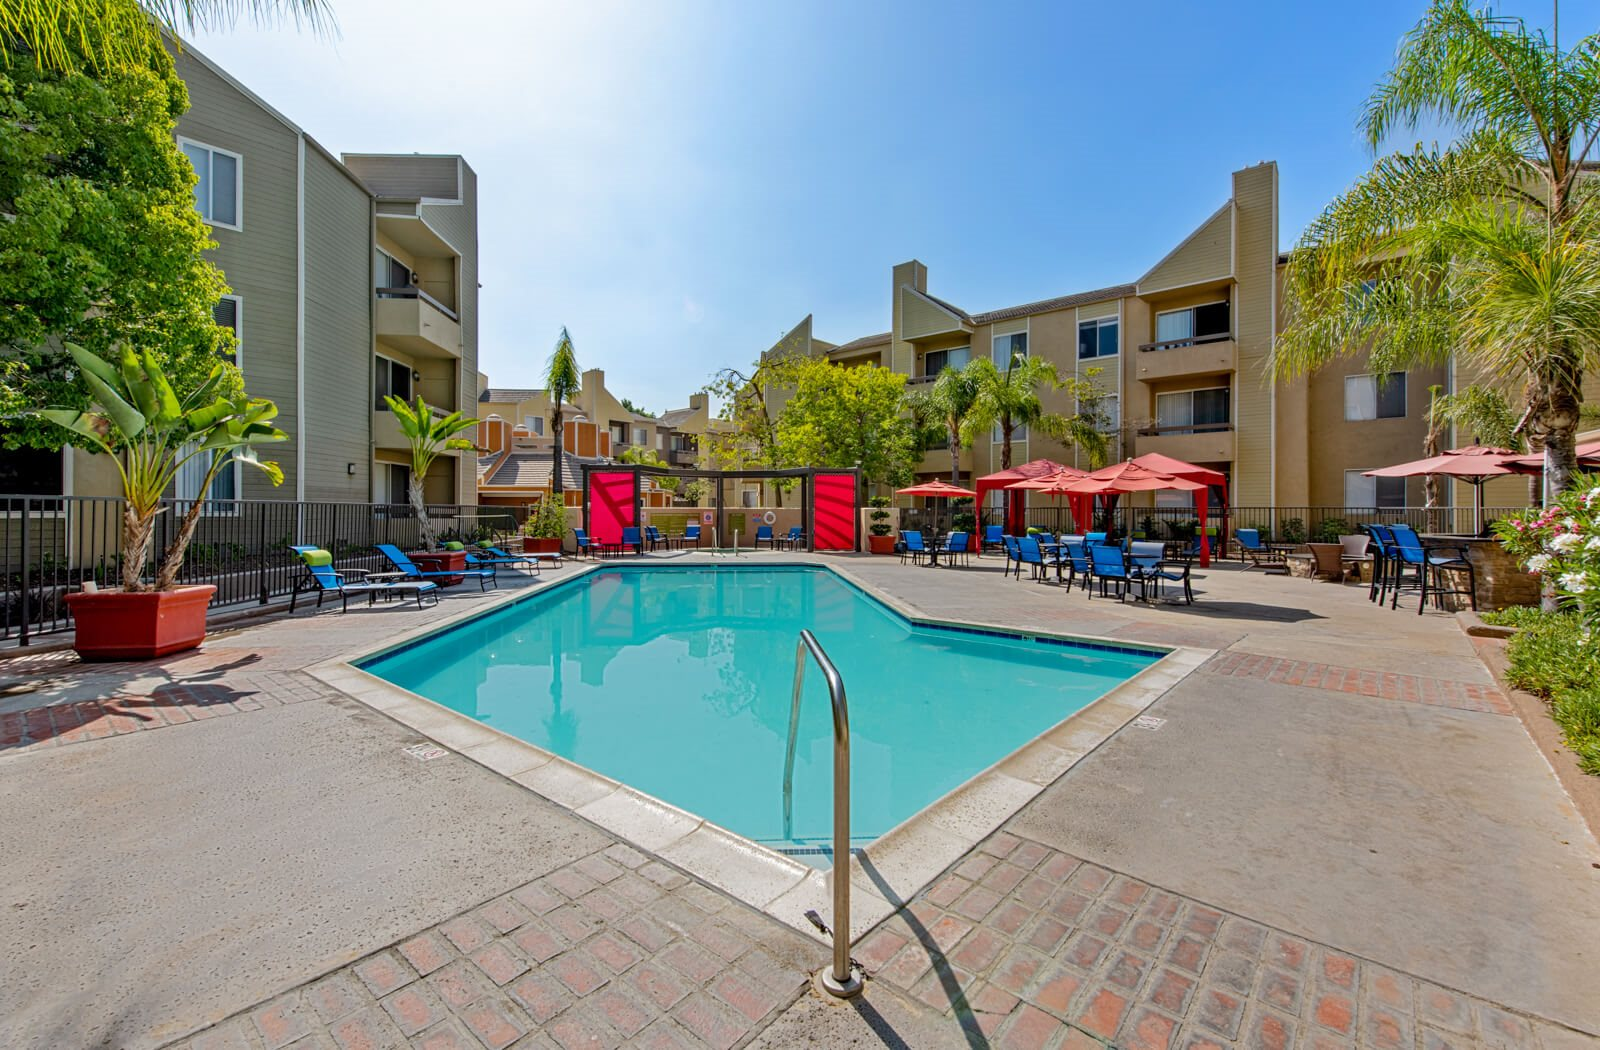 Resort style swimming pool at beautiful Enclave apartments courtyard